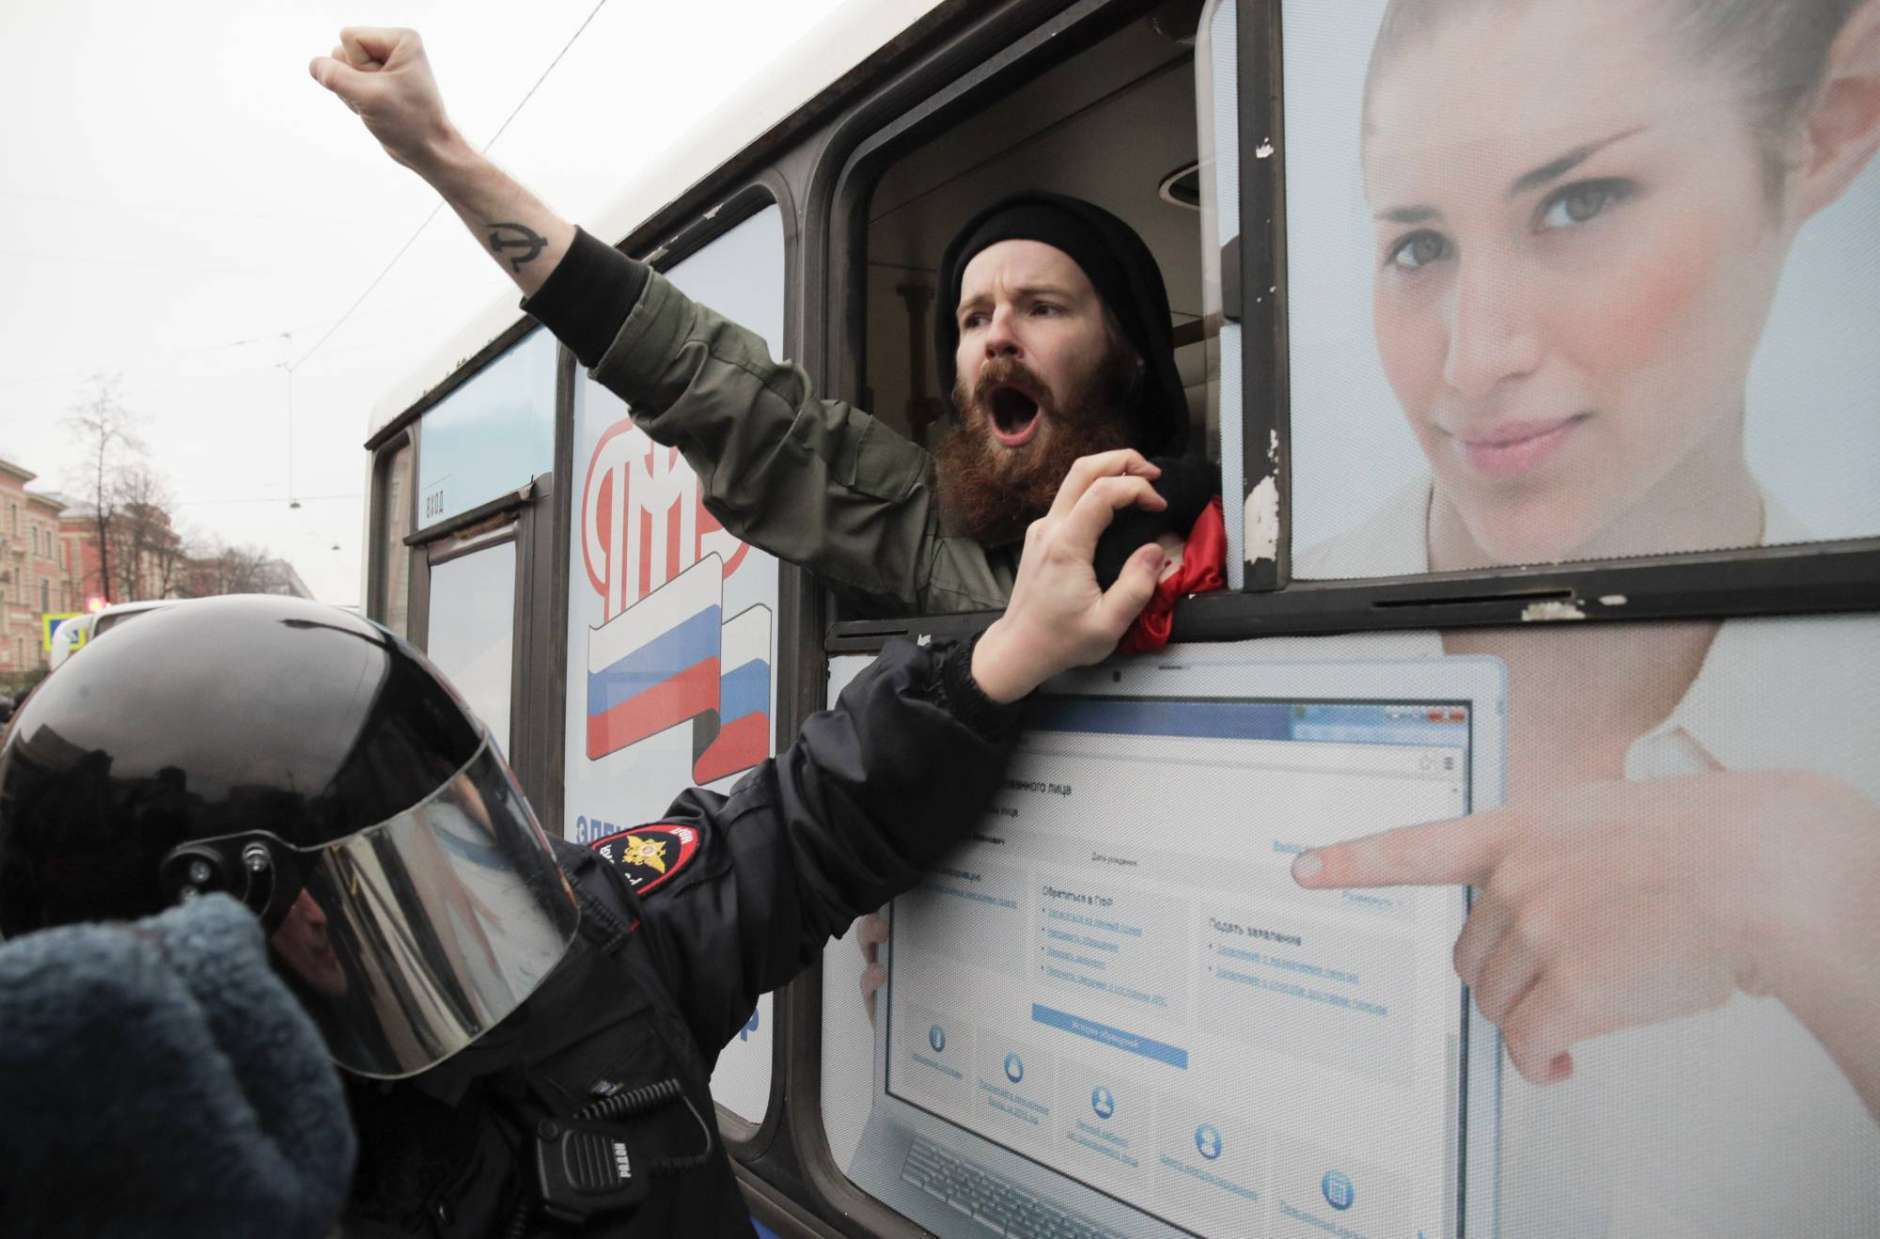 A detained member of the Other Russia movement shouts from a police bus during an unauthorized rally to mark the centenary of the Bolshevik Revolution in St. Petersburg, Russia, on Monday, Nov. 6, 2017. The Kremlin is avoiding any official commemoration of the anniversary, tip-toeing around the event that remains polarizing for many. (AP Photo/Dmitri Lovetsky)